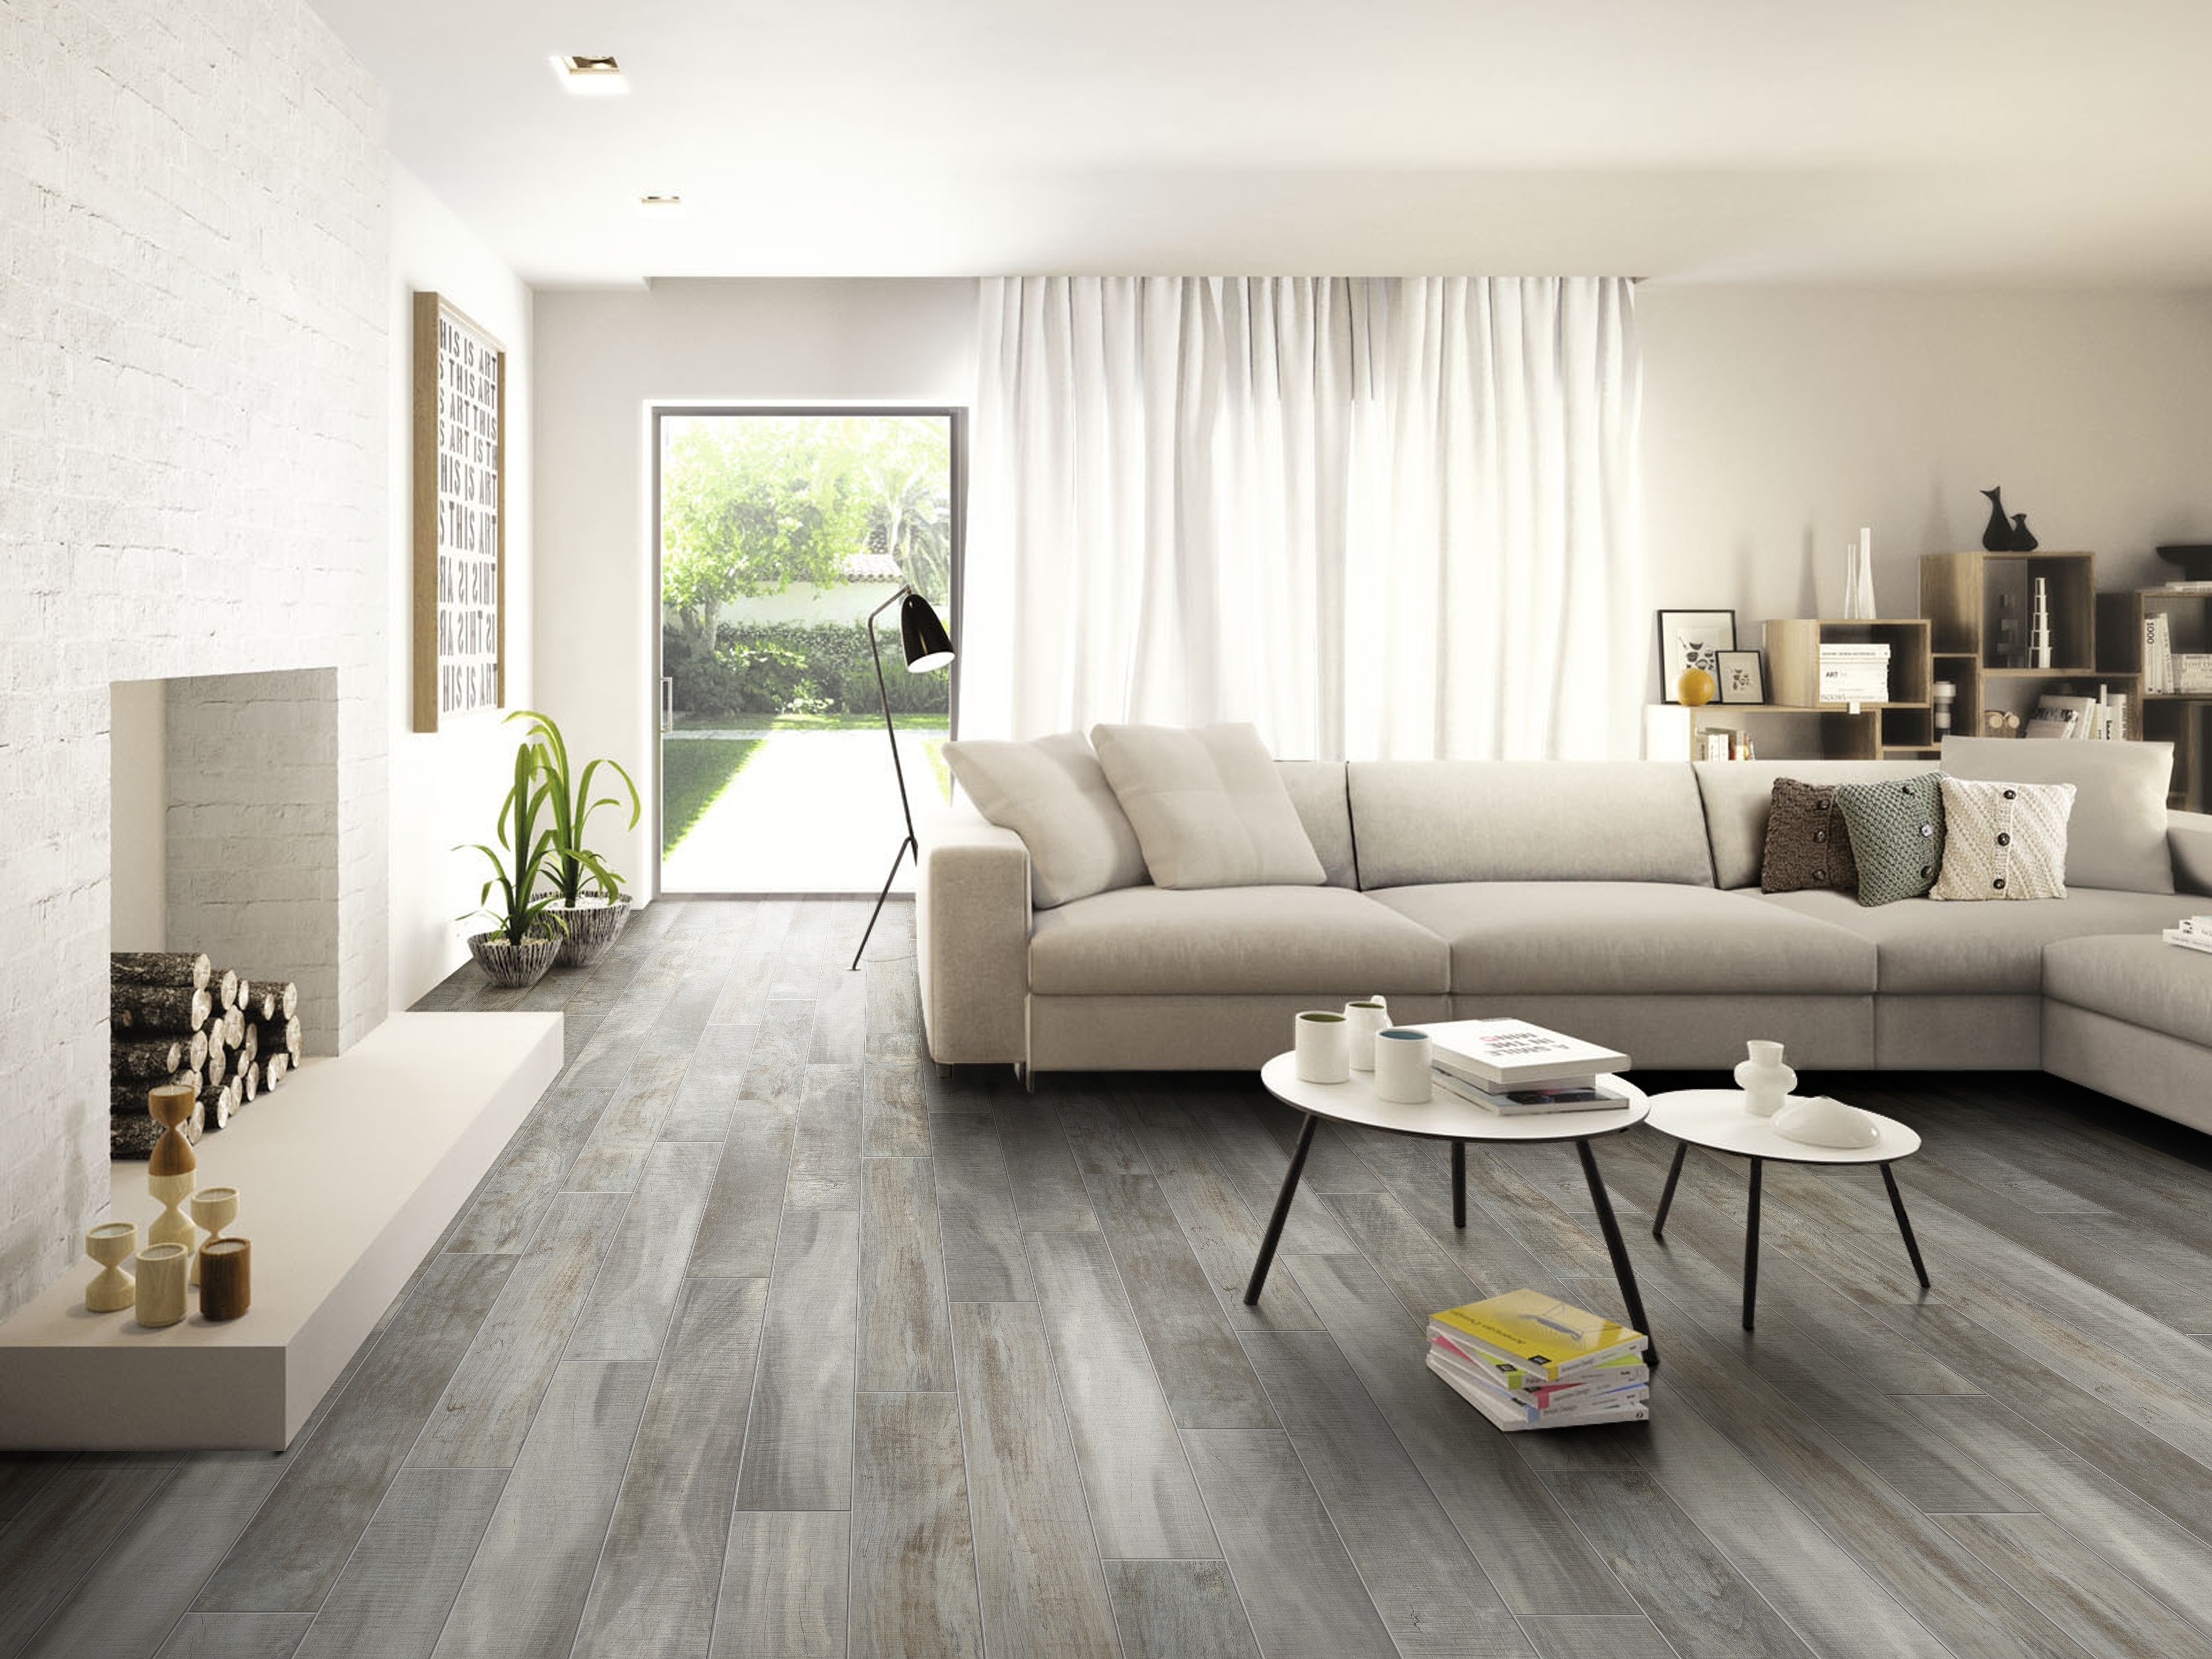 Salerno Porcelain Tile - Trail Wood Series Light Grey / 8\